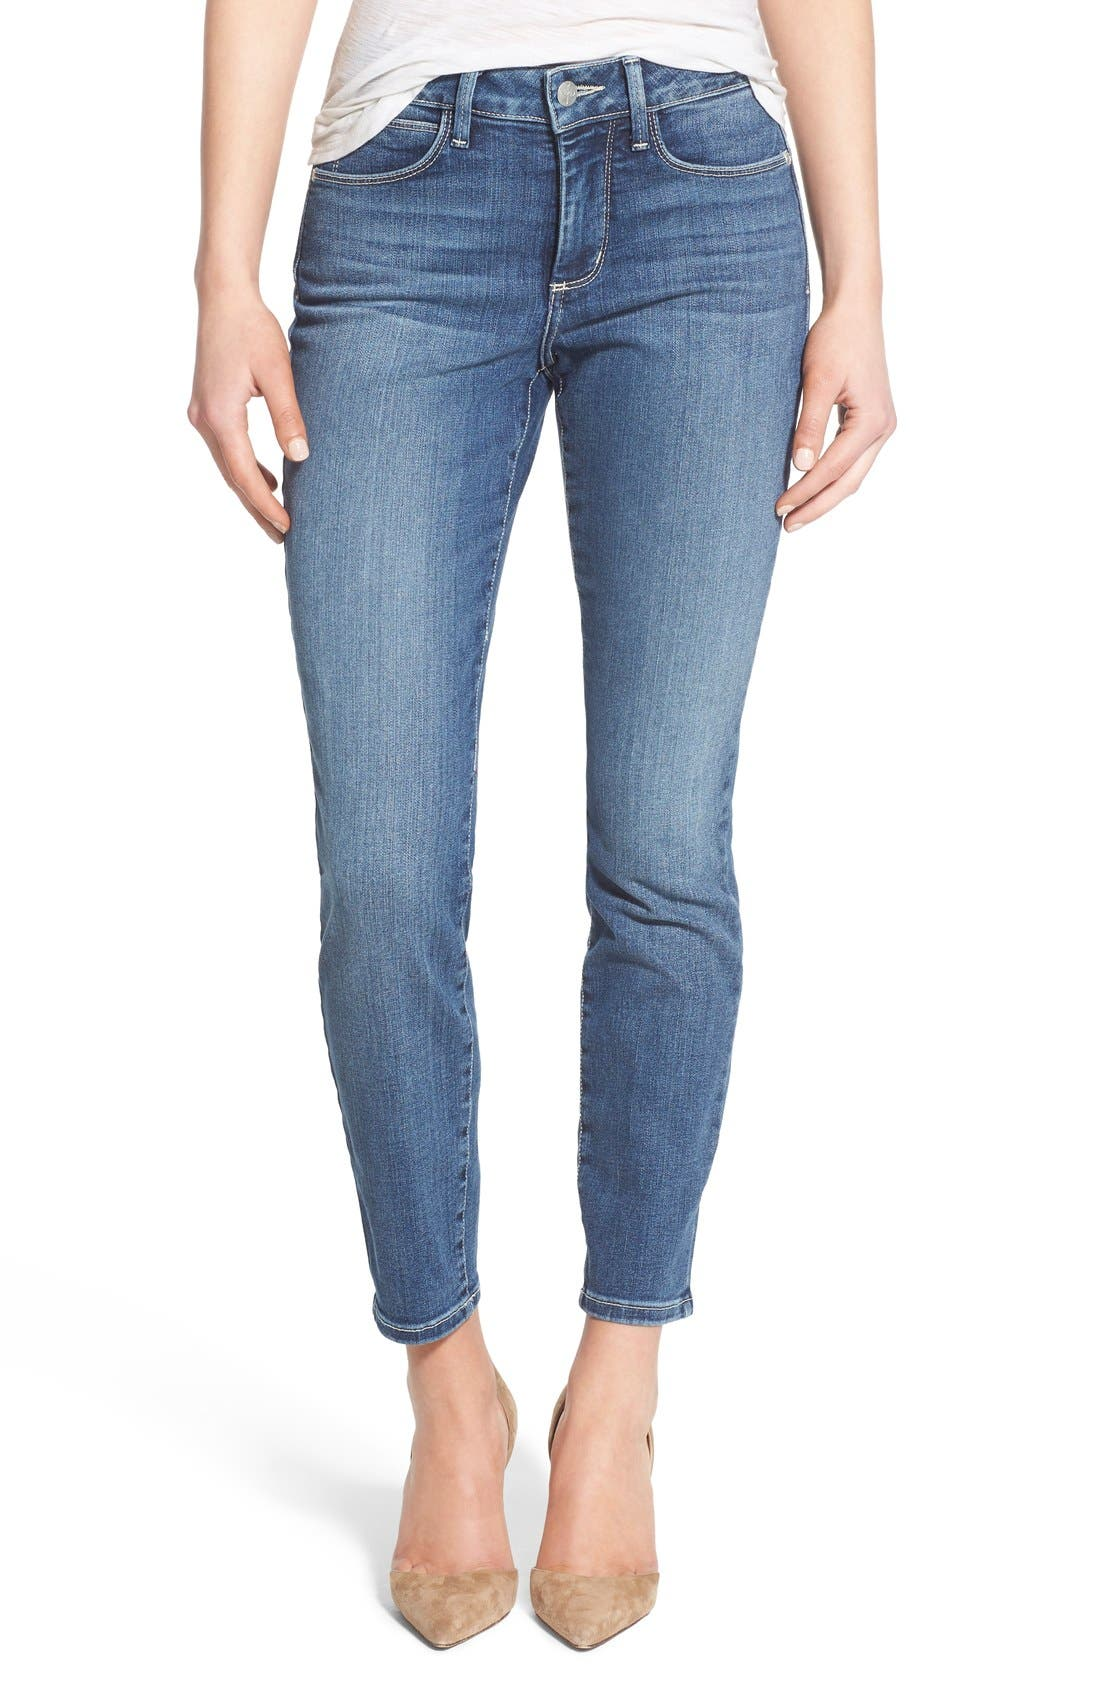 'Clarissa' Stretch Ankle Skinny Jeans,                             Main thumbnail 1, color,                             Heyburn